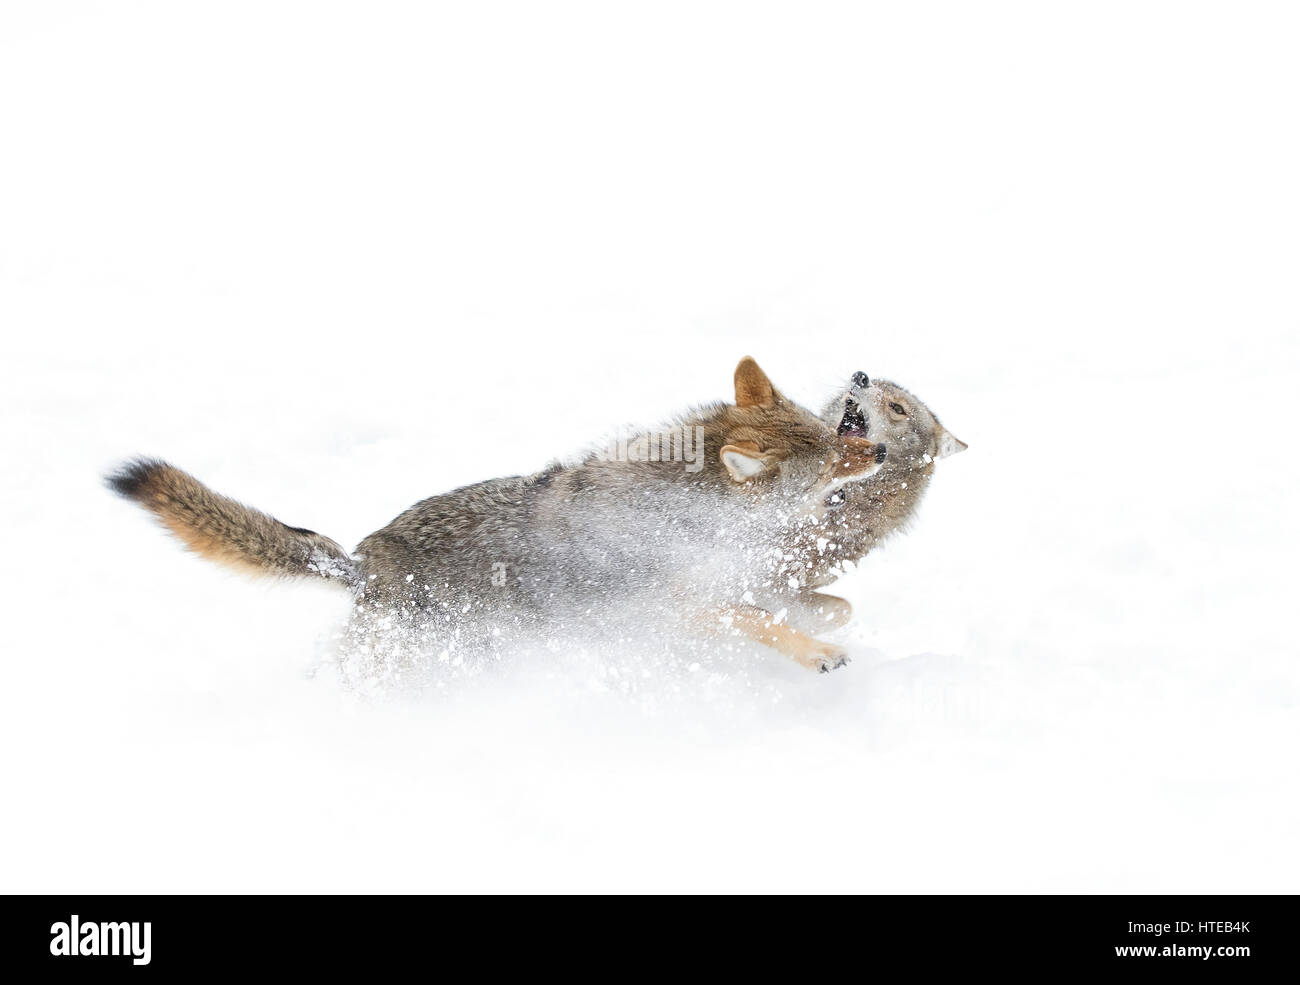 Two Coyotes (Canis latrans) isolated against a white background running and playing in the winter snow in Canada - Stock Image